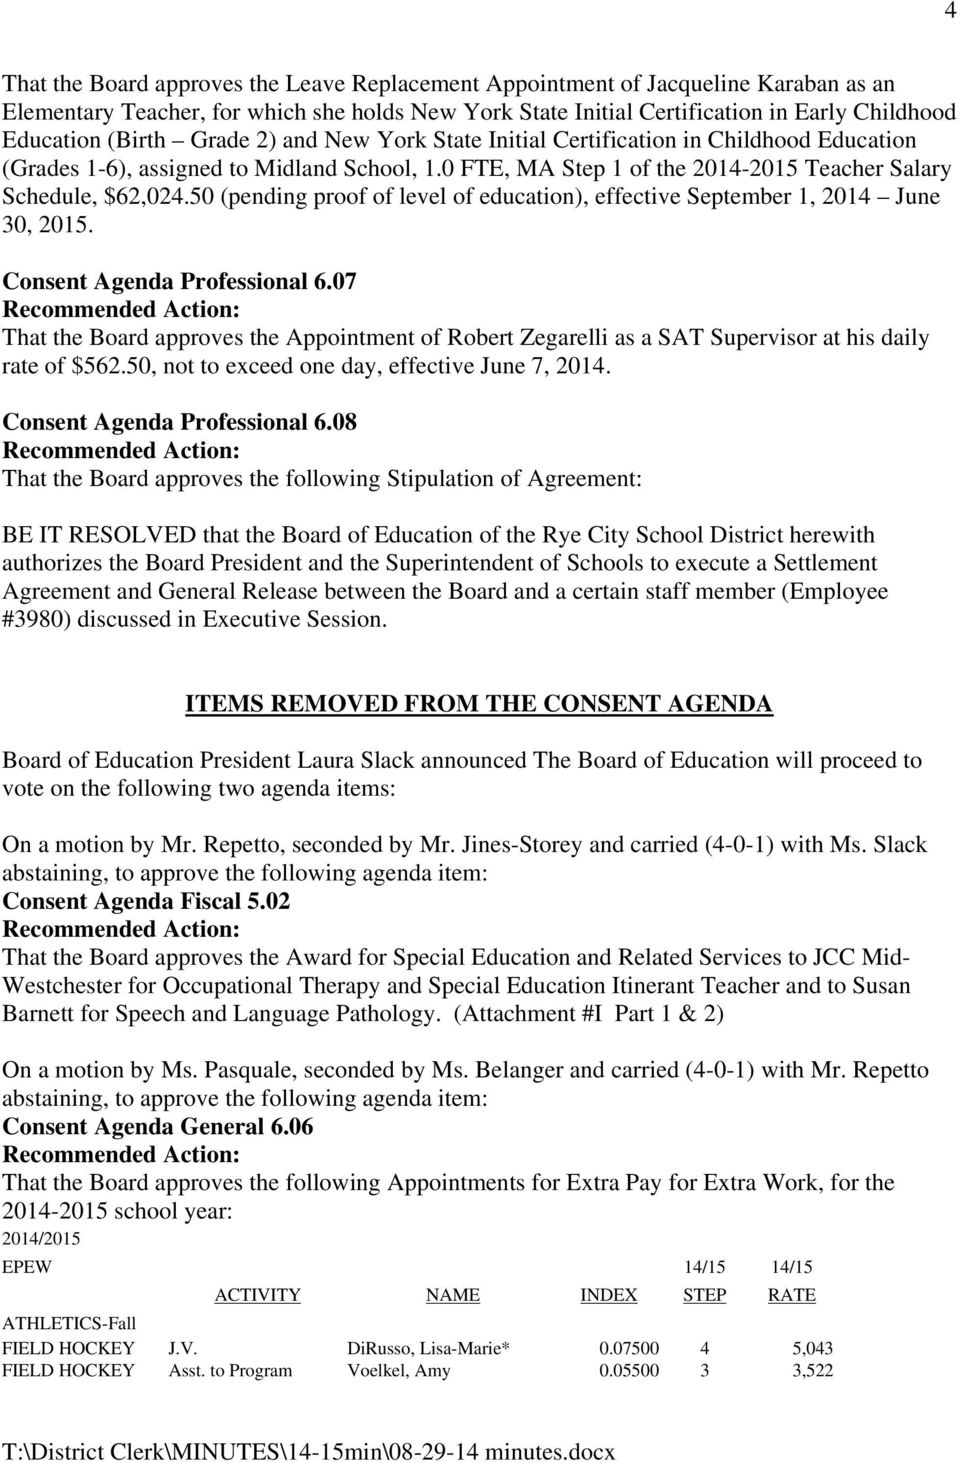 MINUTES RYE CITY SCHOOL DISTRICT SPECIAL BOARD OF EDUCATION MEETING